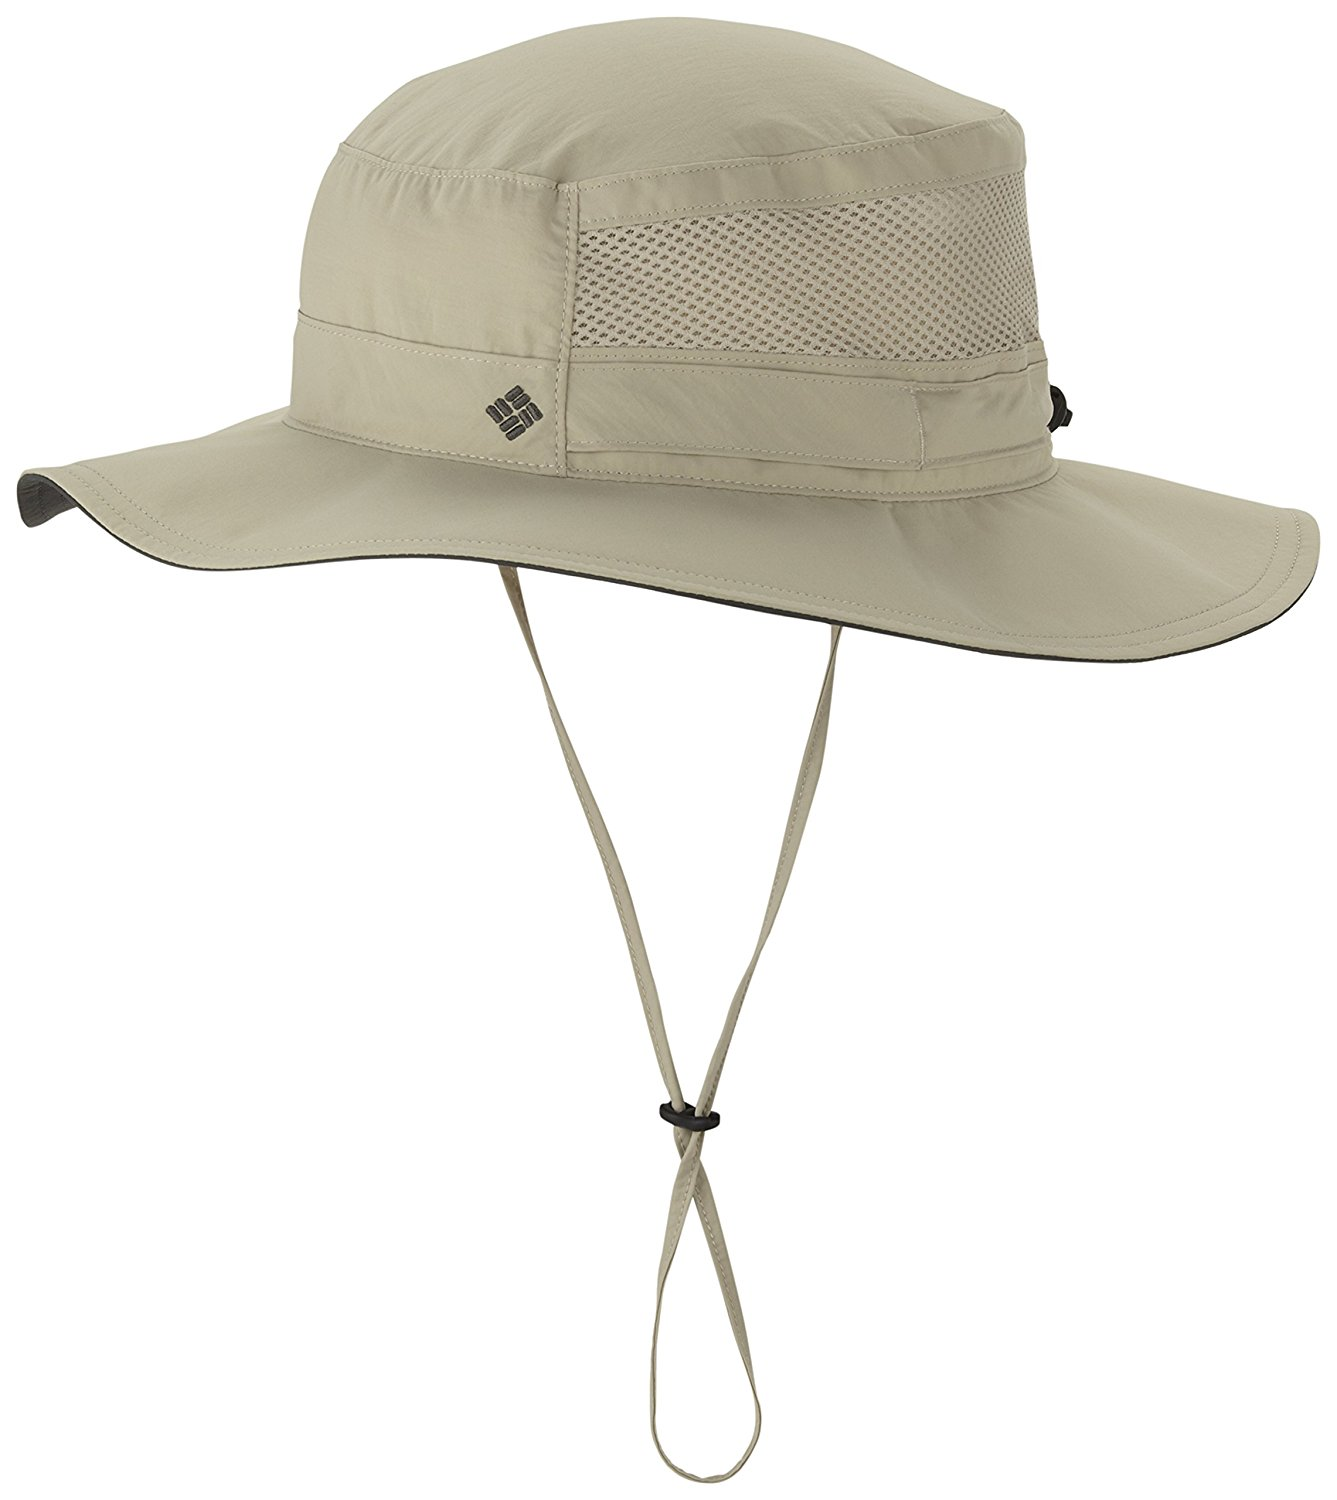 Ddyoutdoor 07-281 Outdoor Sun Protection Fishing Cap